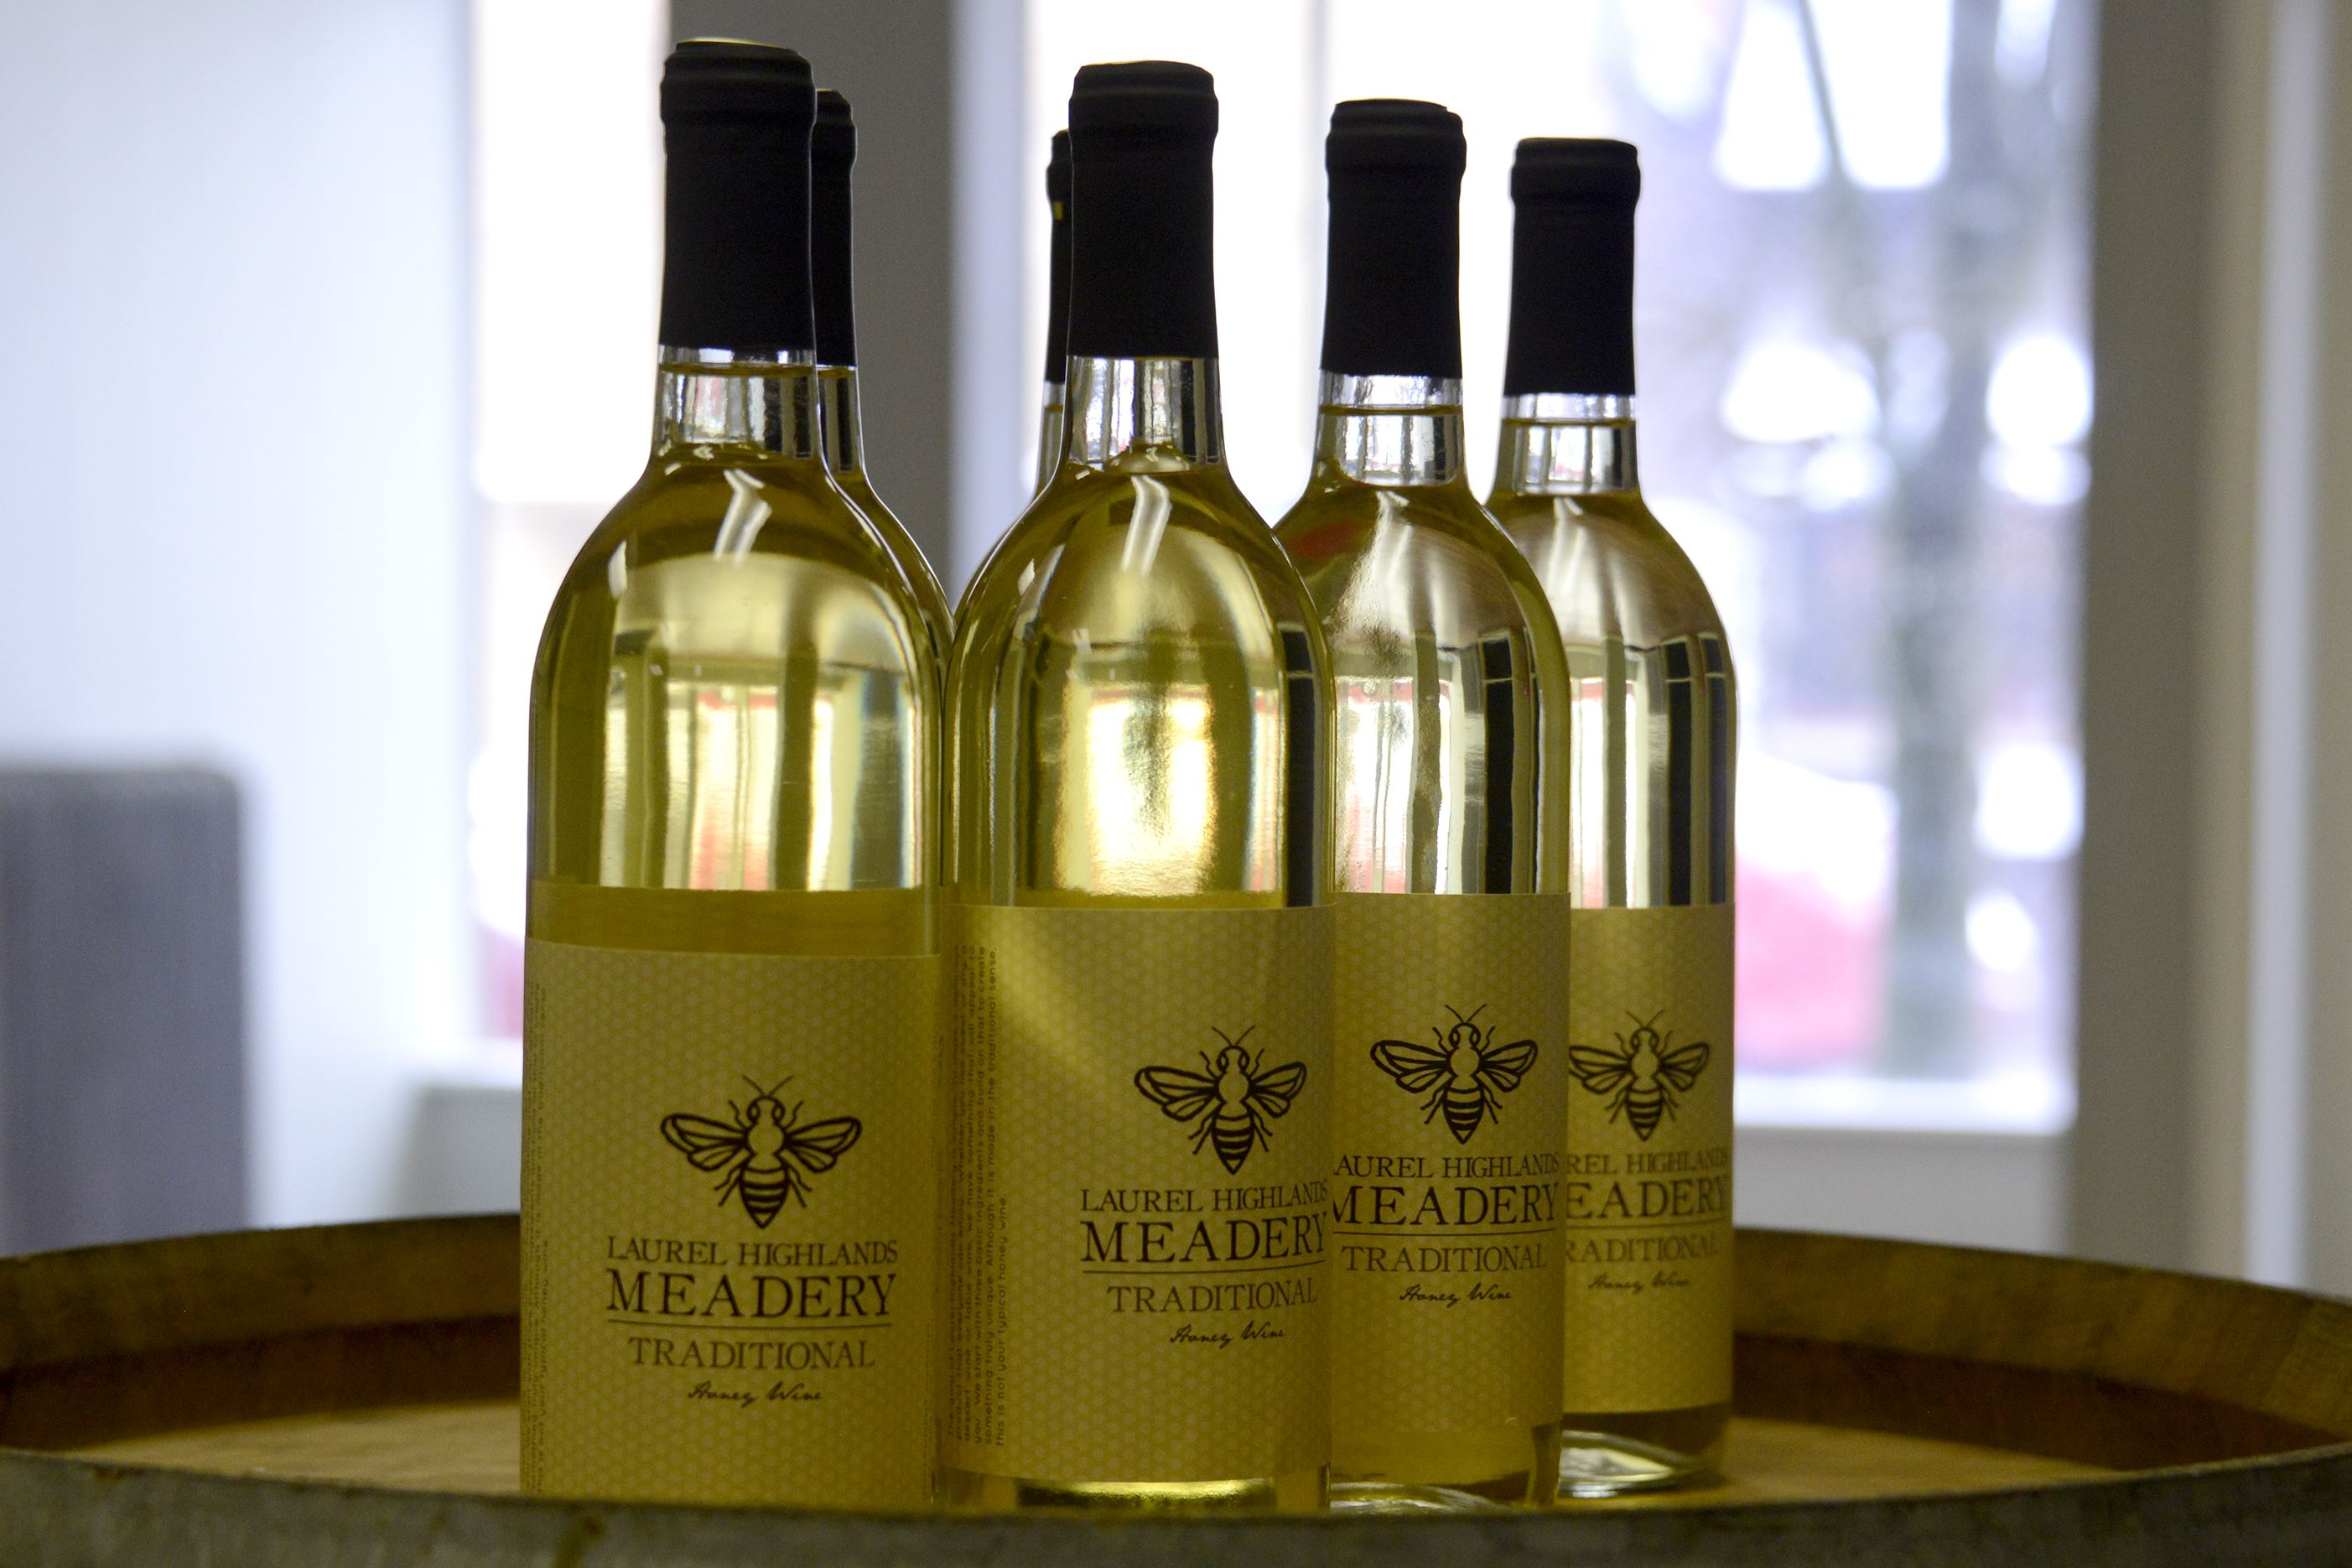 20160209dsMeaderyMag04-3 A closeup of a group of bottles of Laurel Highlands Meadery's traditional honey wine.